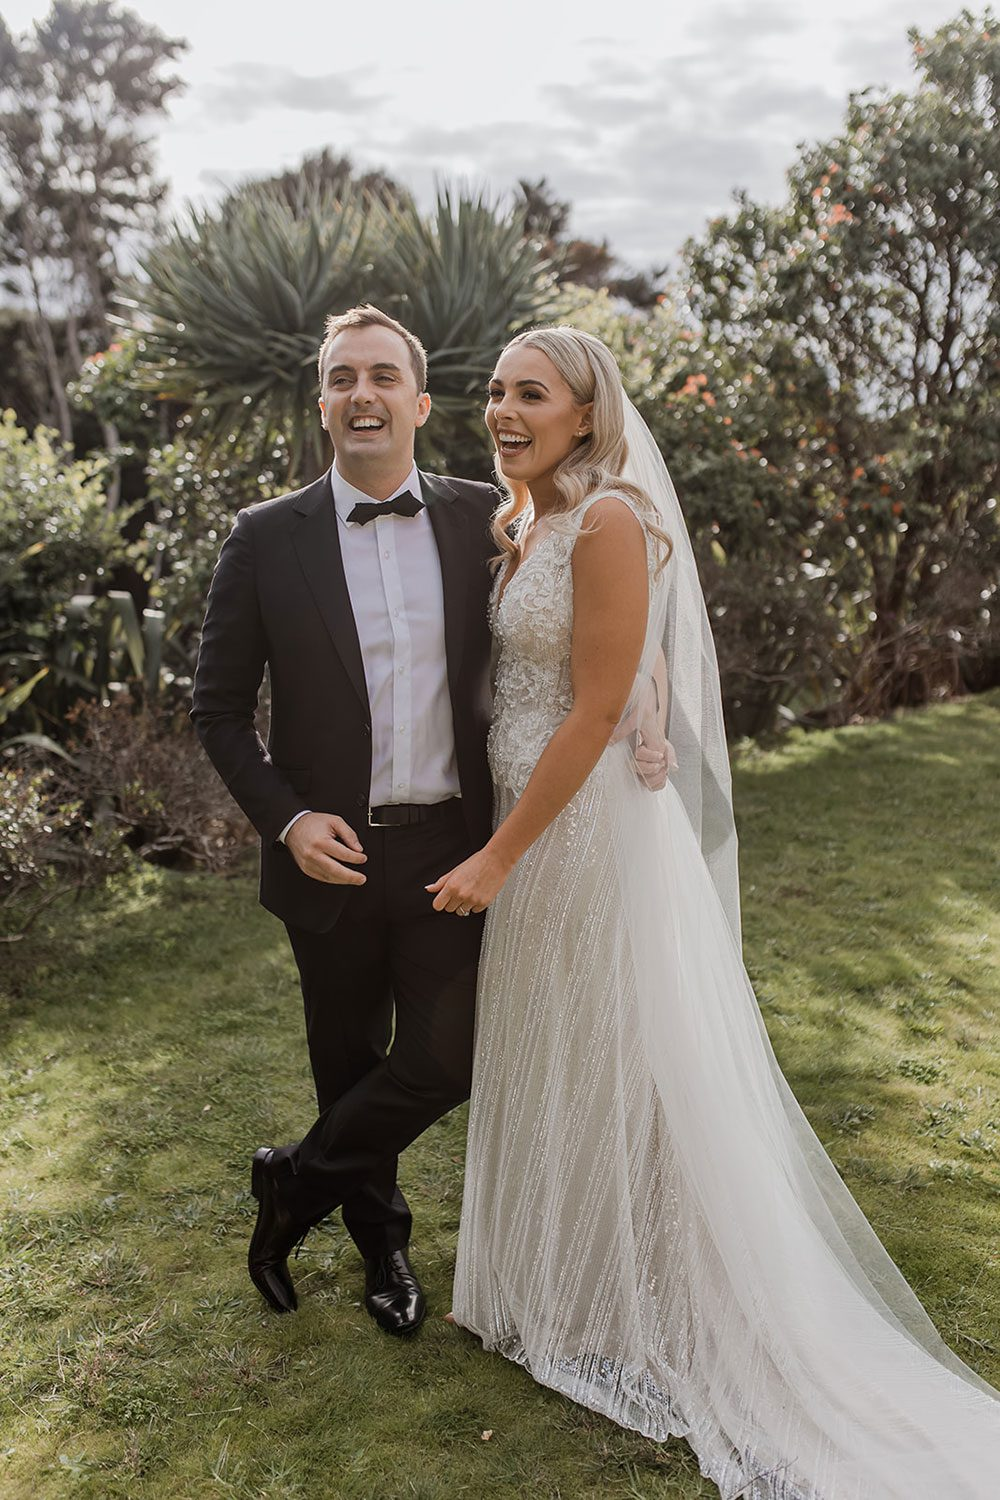 Bride wearing bespoke fitted V-neck gown in beaded lace with front split and sheer beaded overlay by Vinka bridal boutique NZ- with groom in garden laughing